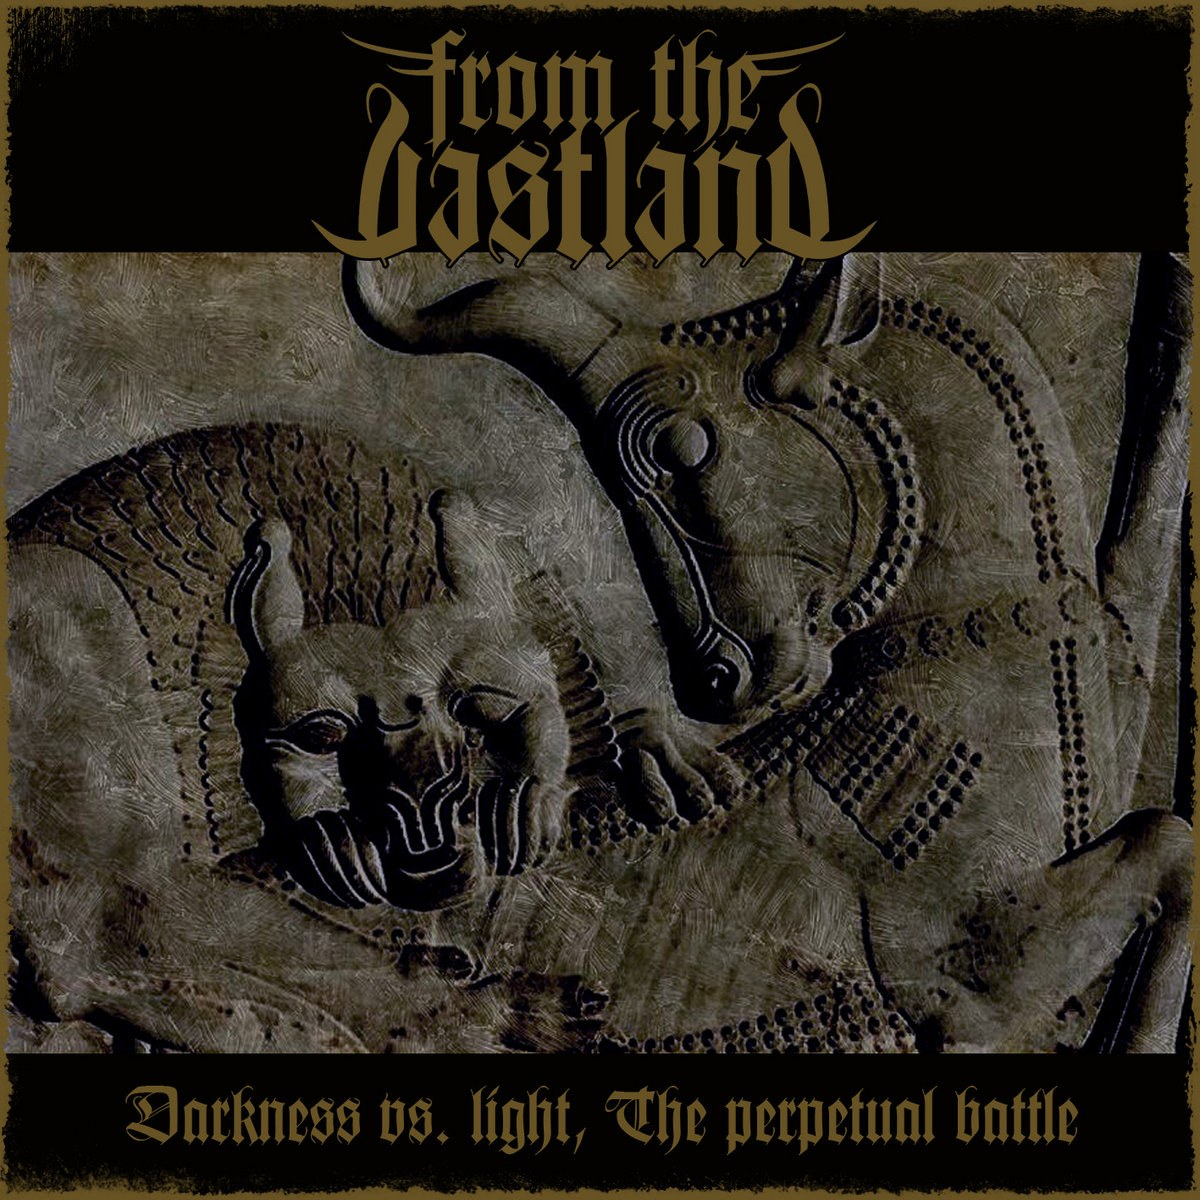 Best Iranian Black Metal album: 'From the Vastland - Darkness vs. Light, the Perpetual Battle'